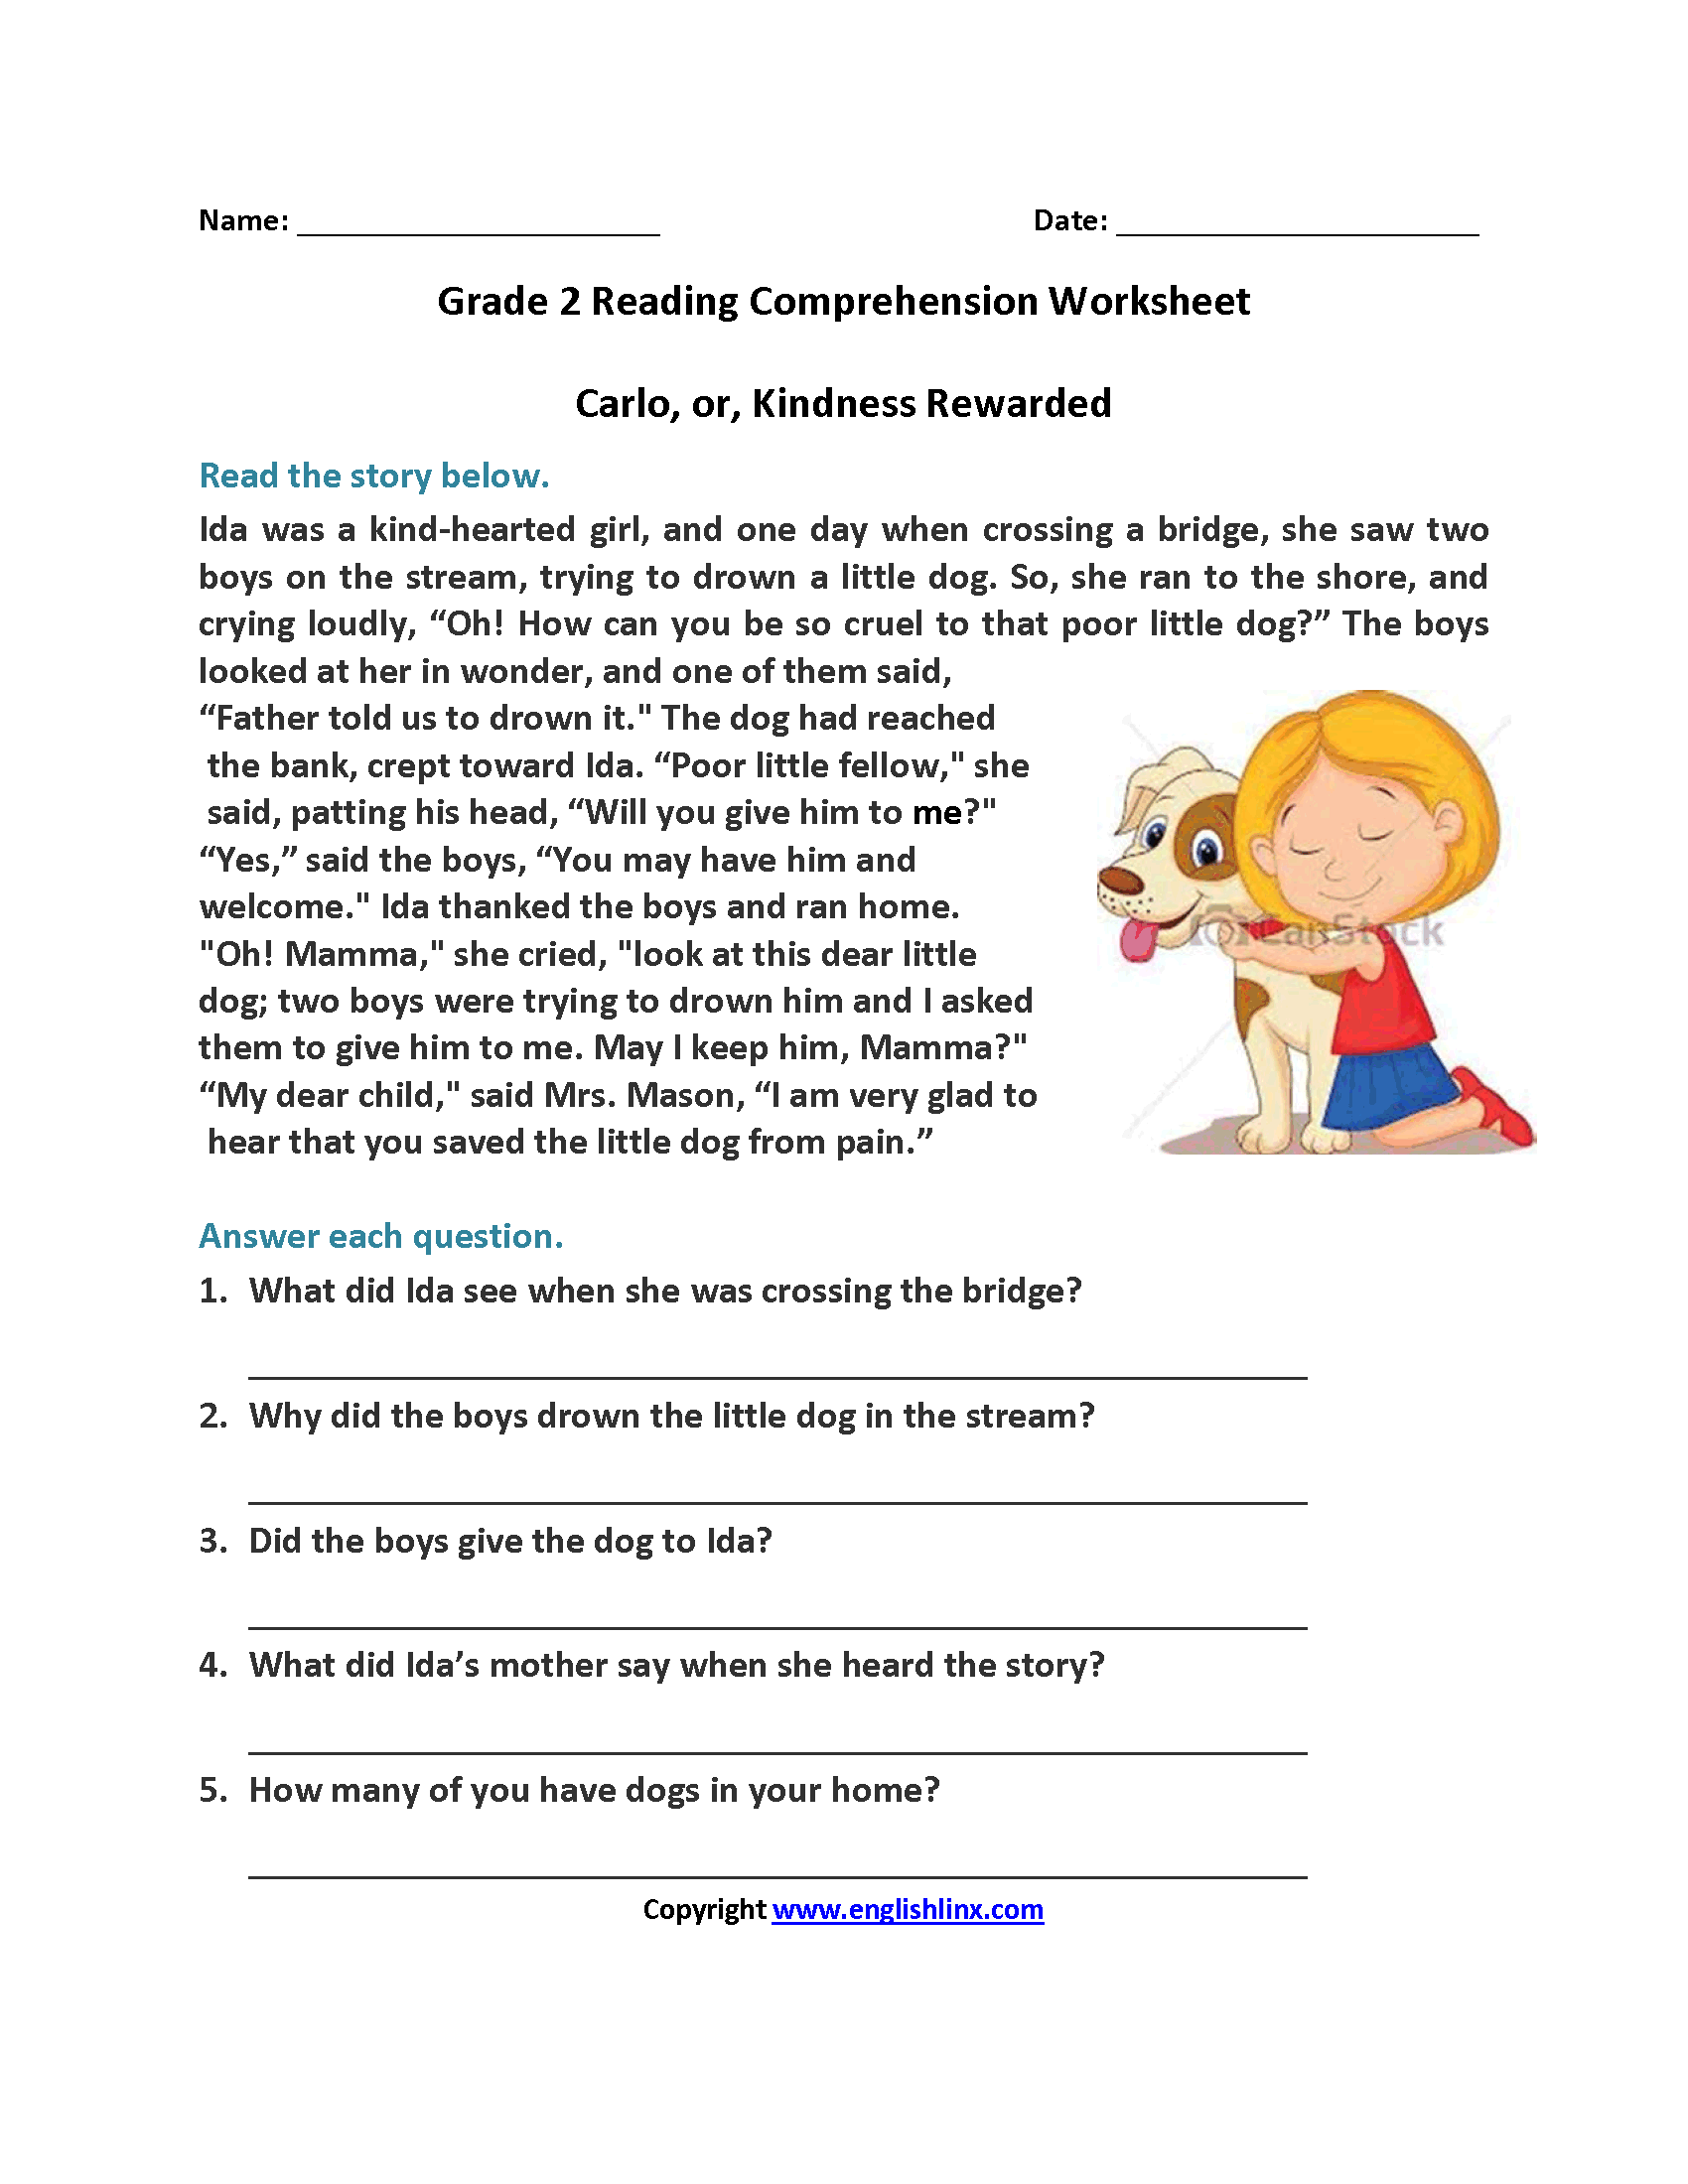 Carlo or Kindness Rewarded Second Grade Reading Worksheets – Reading Comprehension Worksheets 2nd Grade